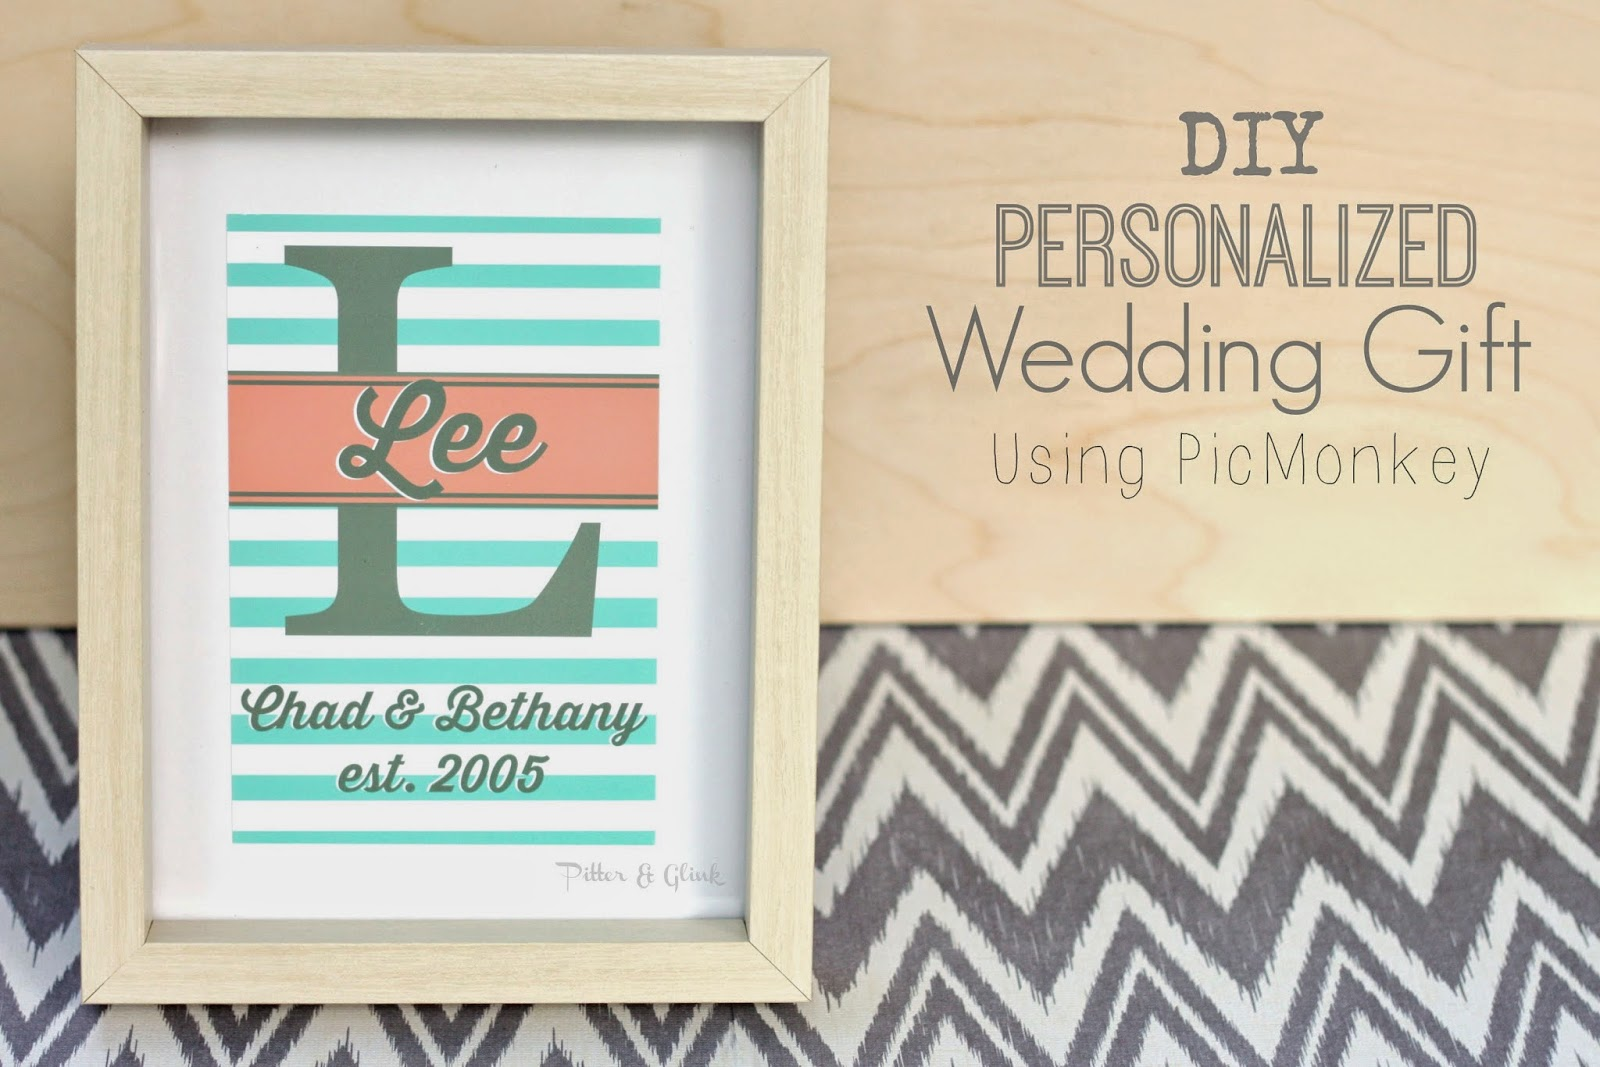 Diy Wedding Gifts For Pitterandglink Personalized